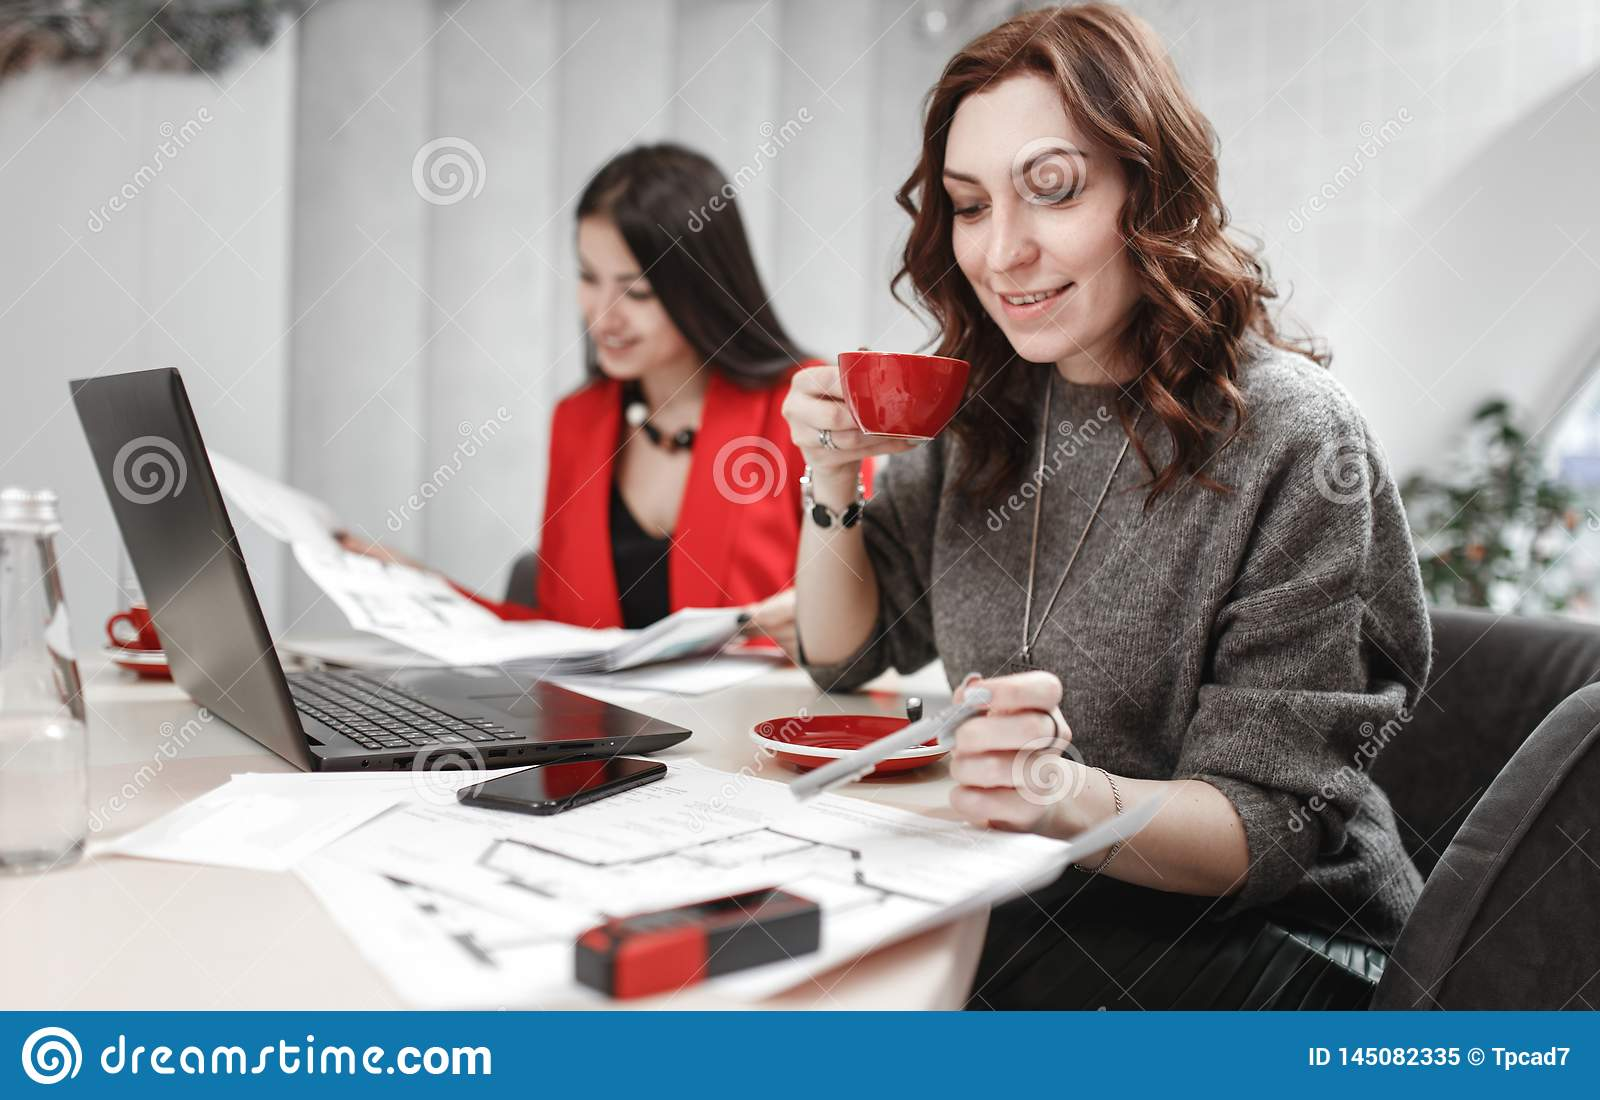 Team of two young women designer are working at the design project of interior sitting at the desk with laptop and